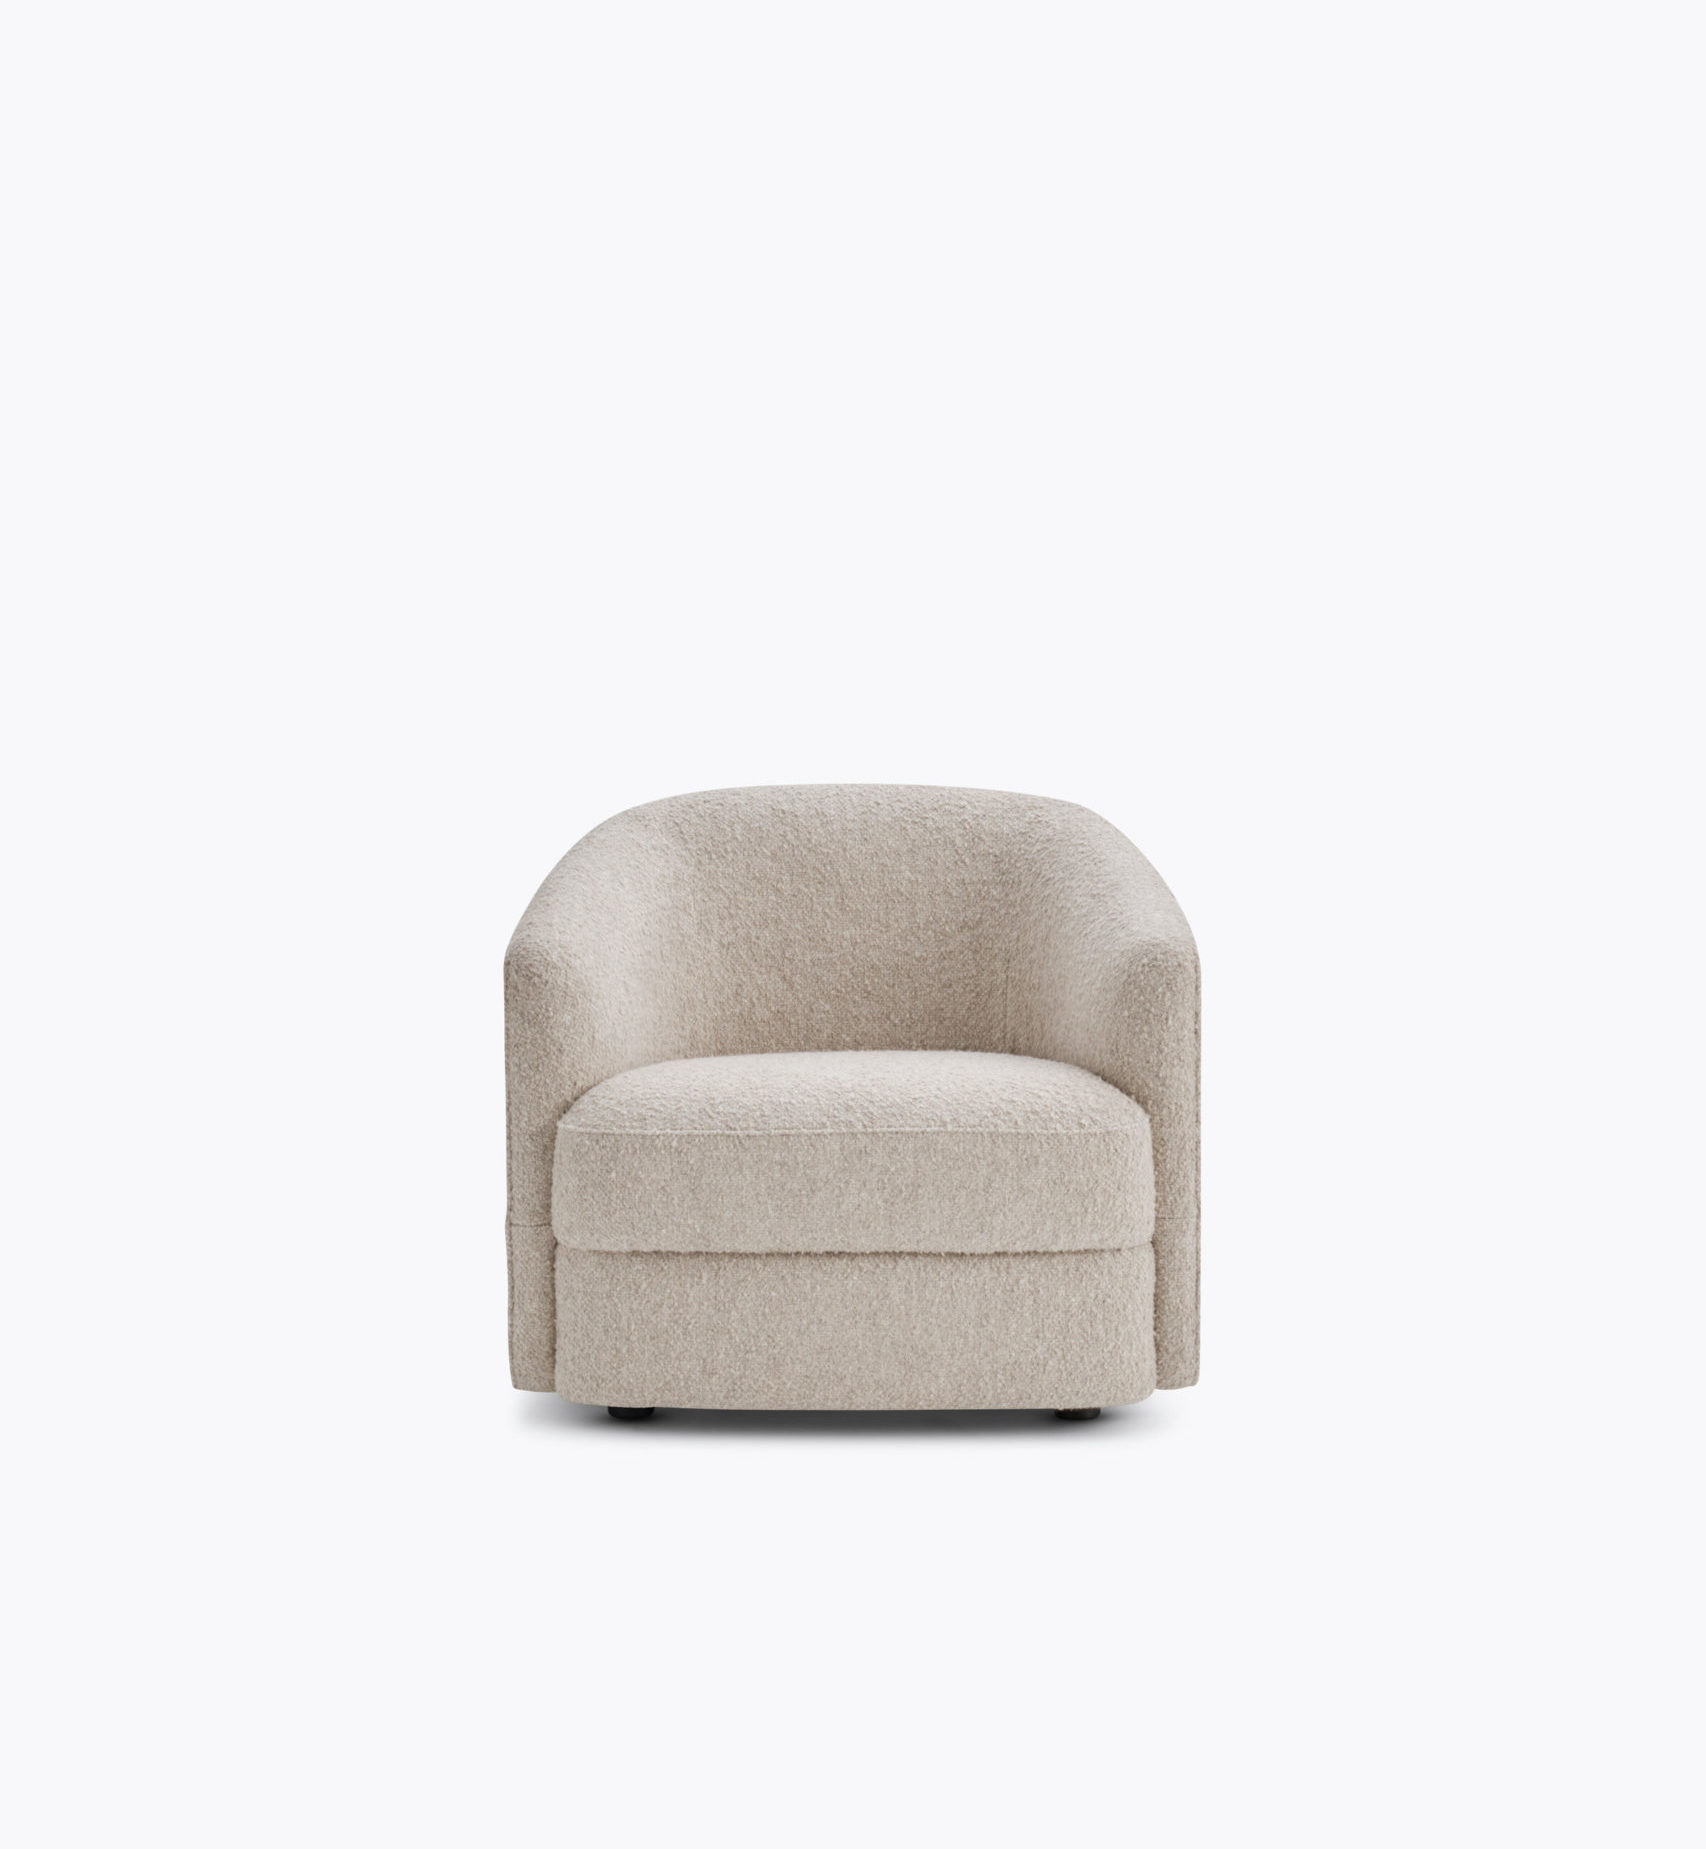 Covent Lounge Chair Front Astrid Textiles Grey Background Cabane Blanche